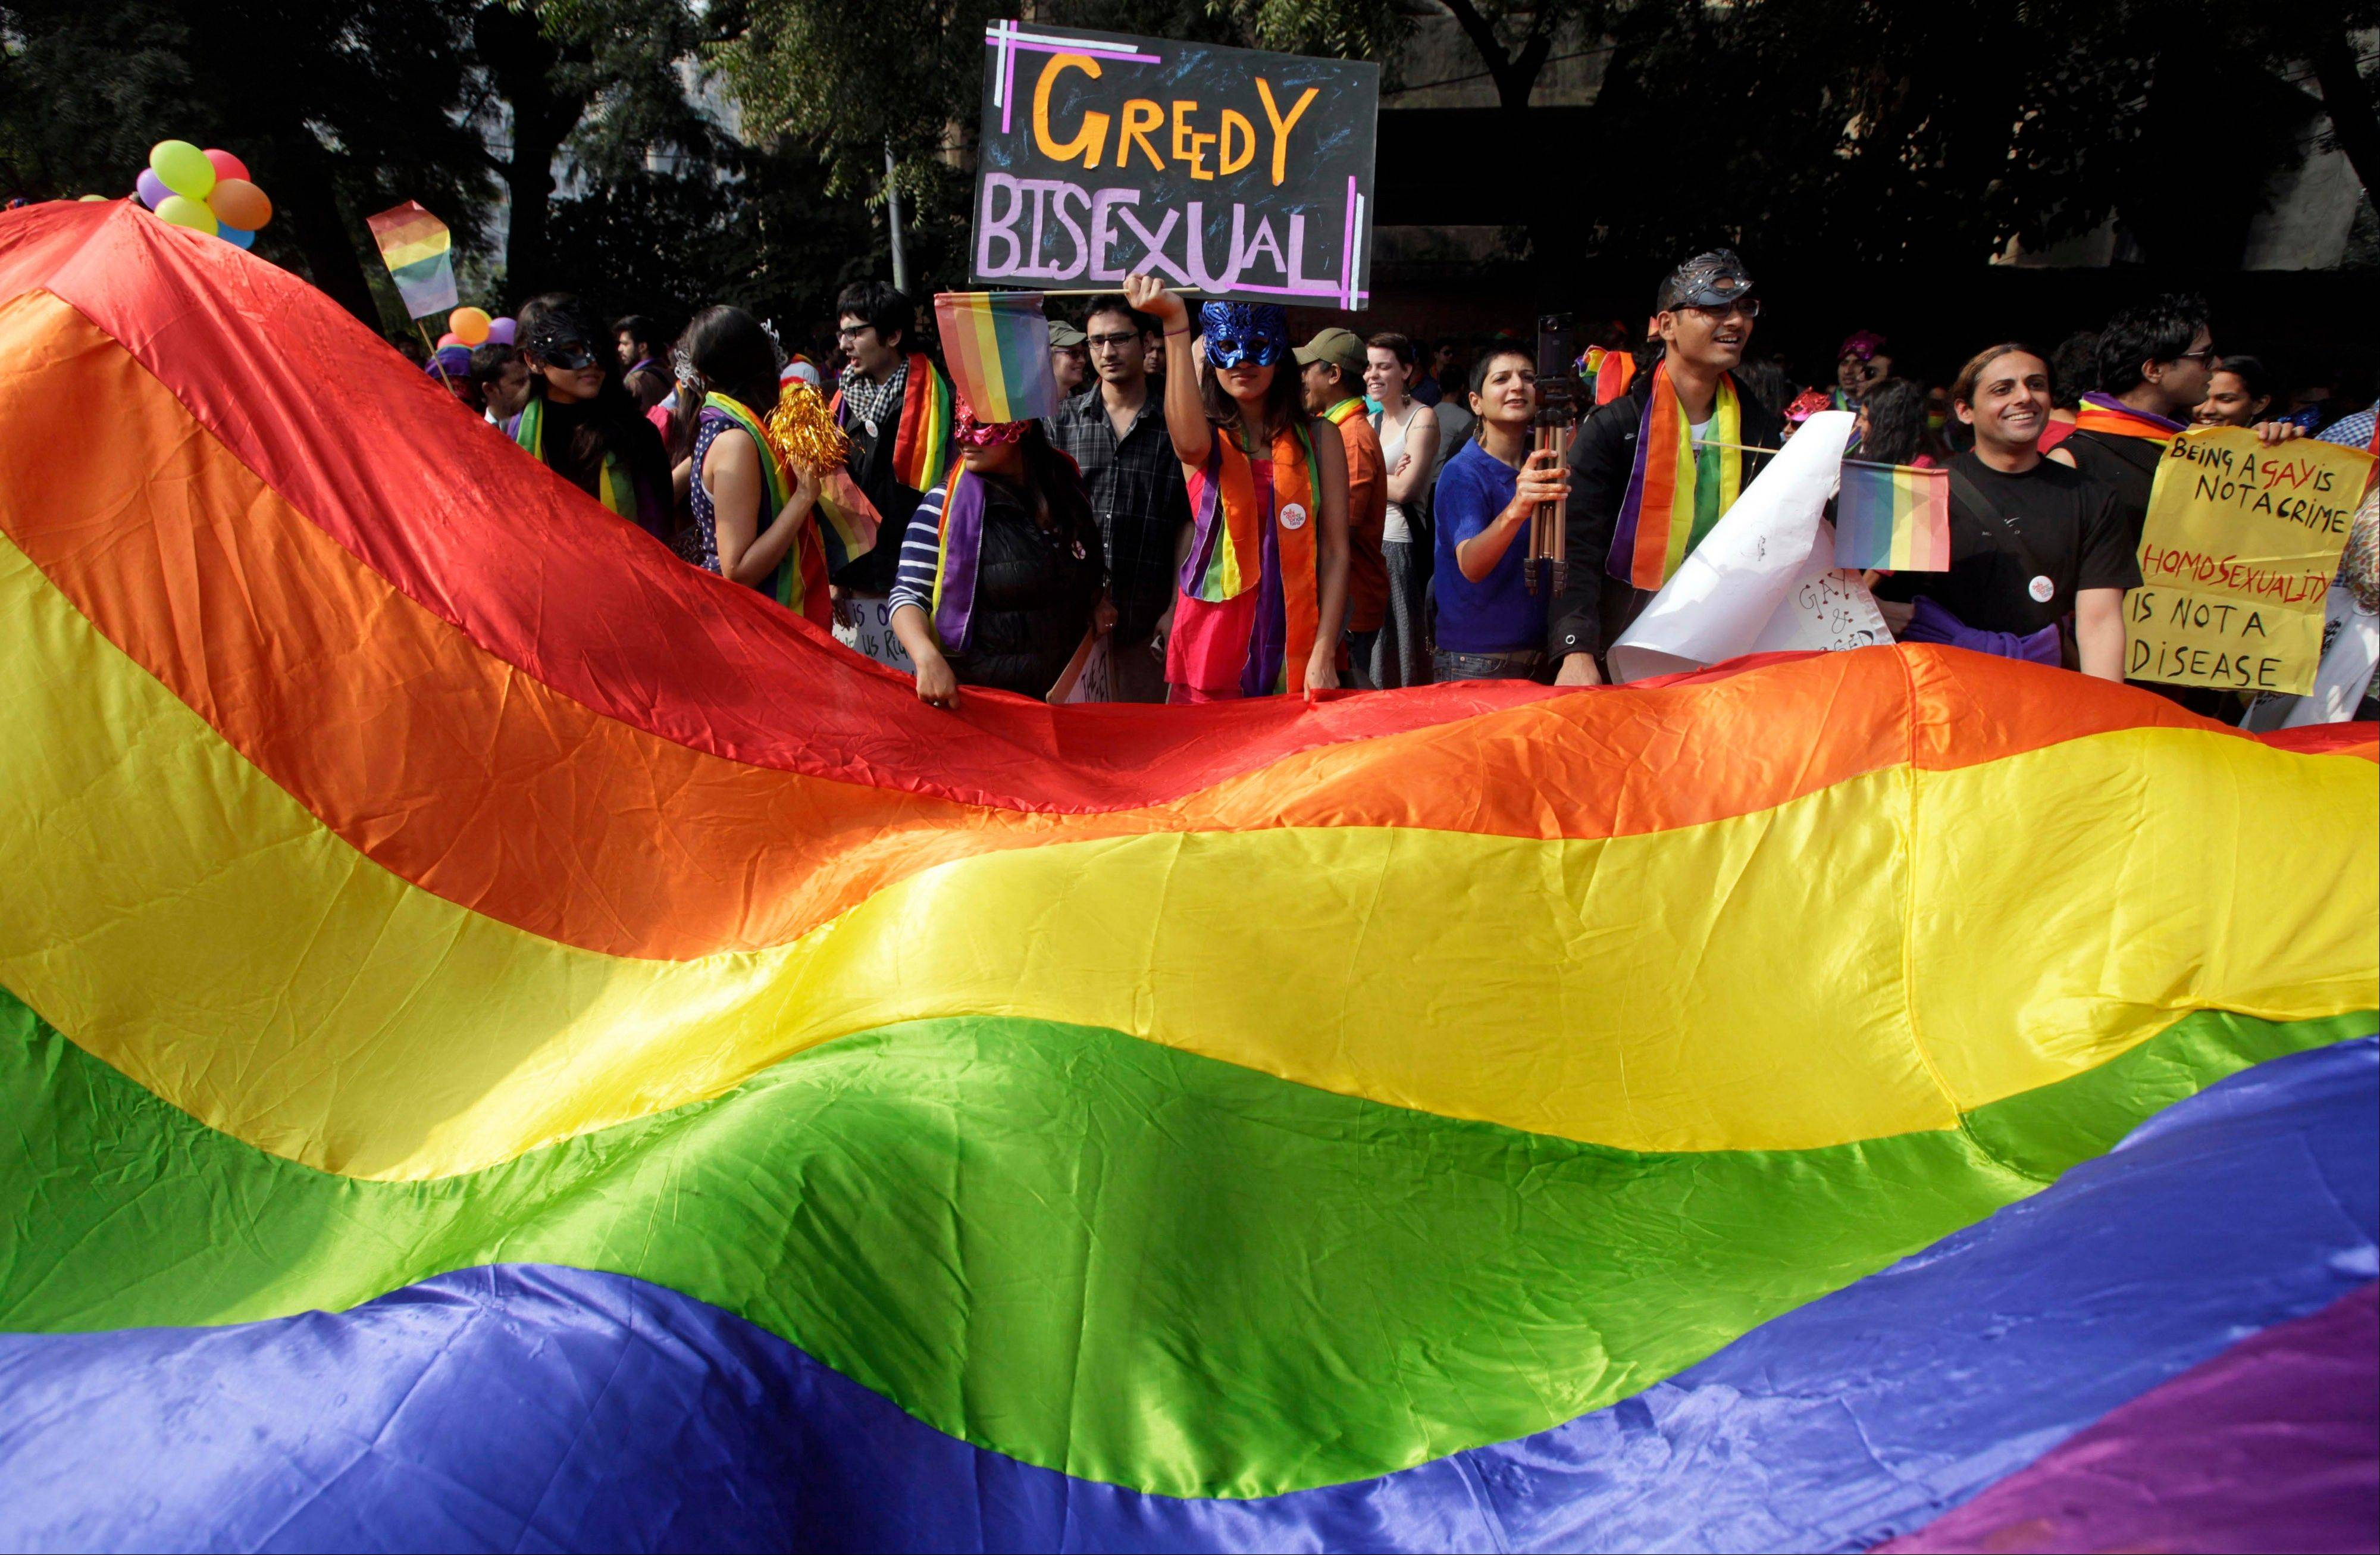 Demonstrators carry a banner Sunday at a gay pride parade in New Delhi, India. Until 2009, gay sex was punishable by up to 10 years in prison in India.